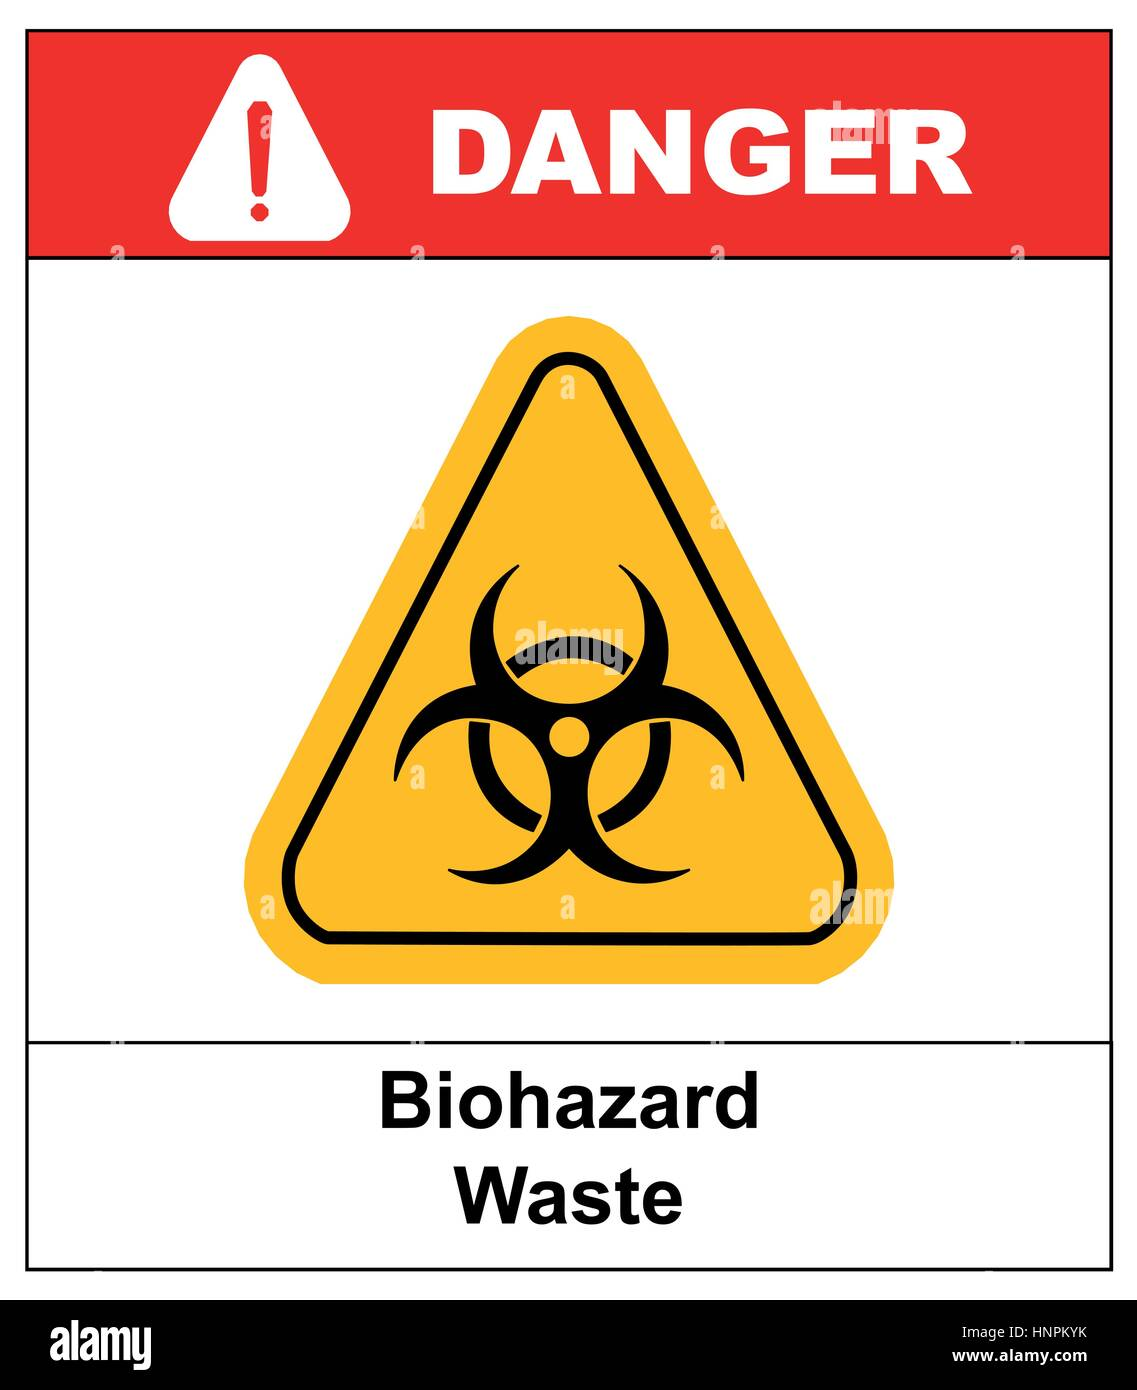 Biohazard symbol sign of biological threat alert vector biohazard biohazard symbol sign of biological threat alert vector biohazard sign in yellow triangle danger banner with text biohazard waste biocorpaavc Images